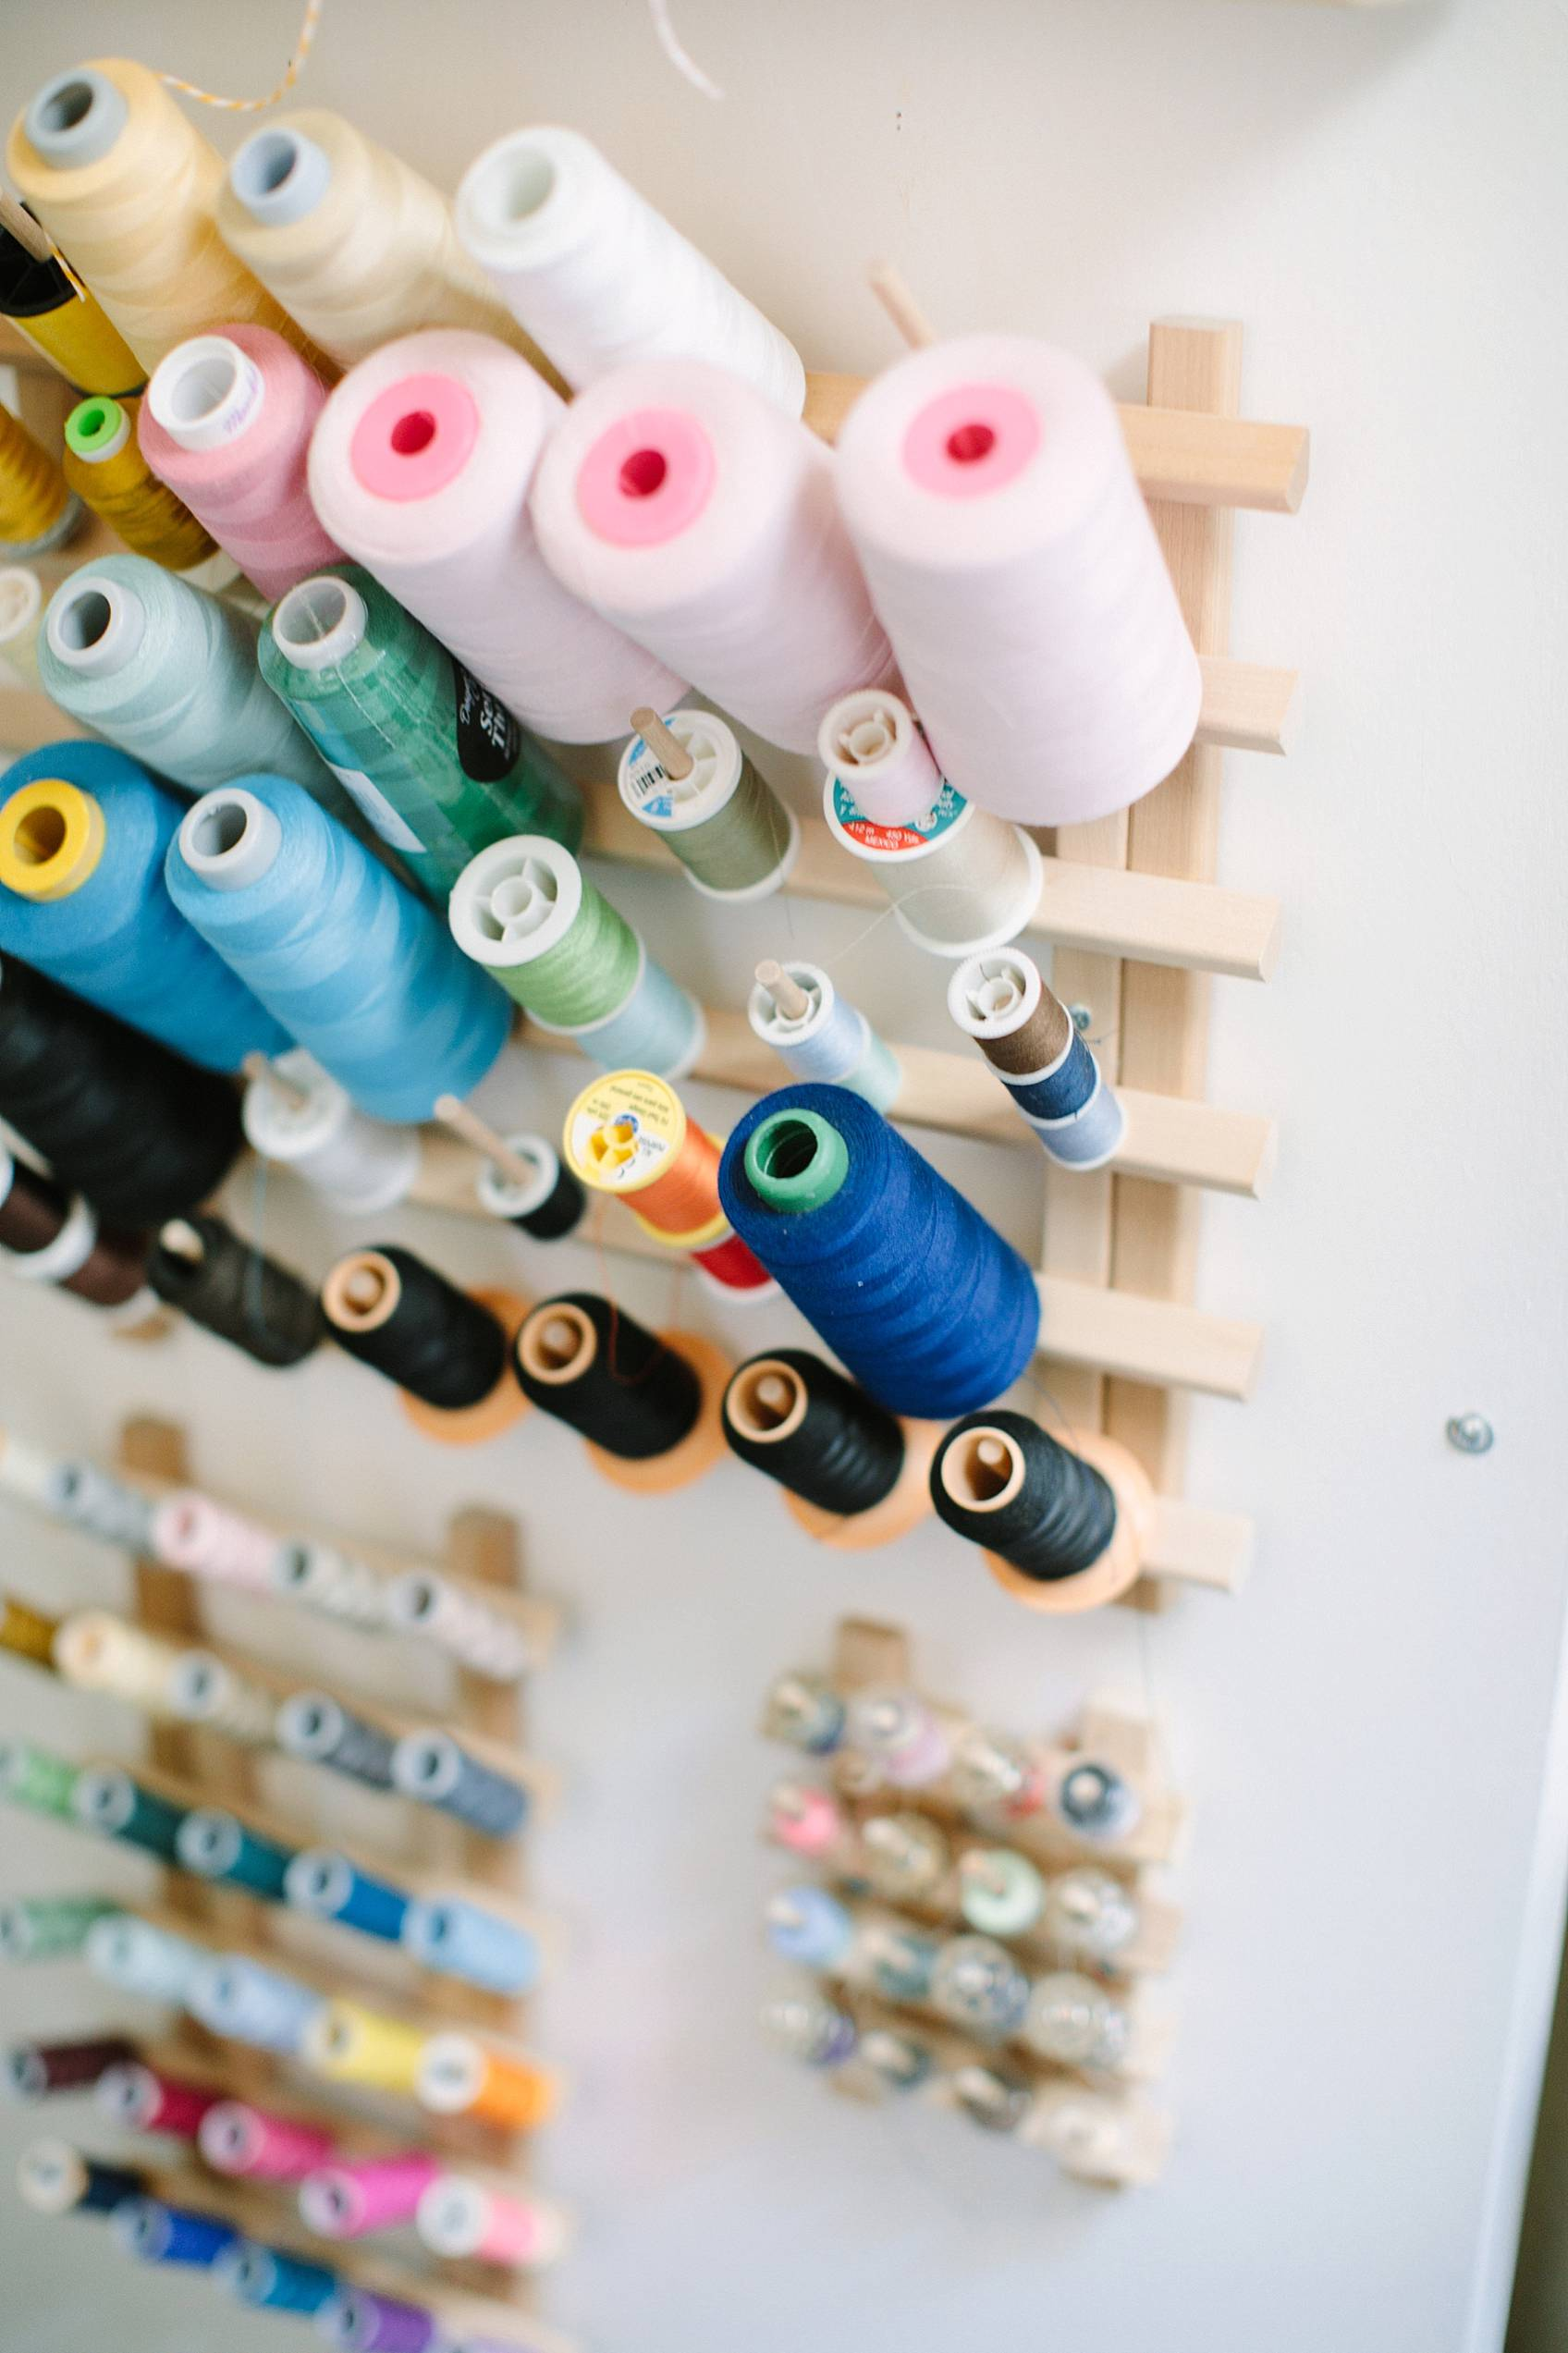 spools of colorful thread mounted